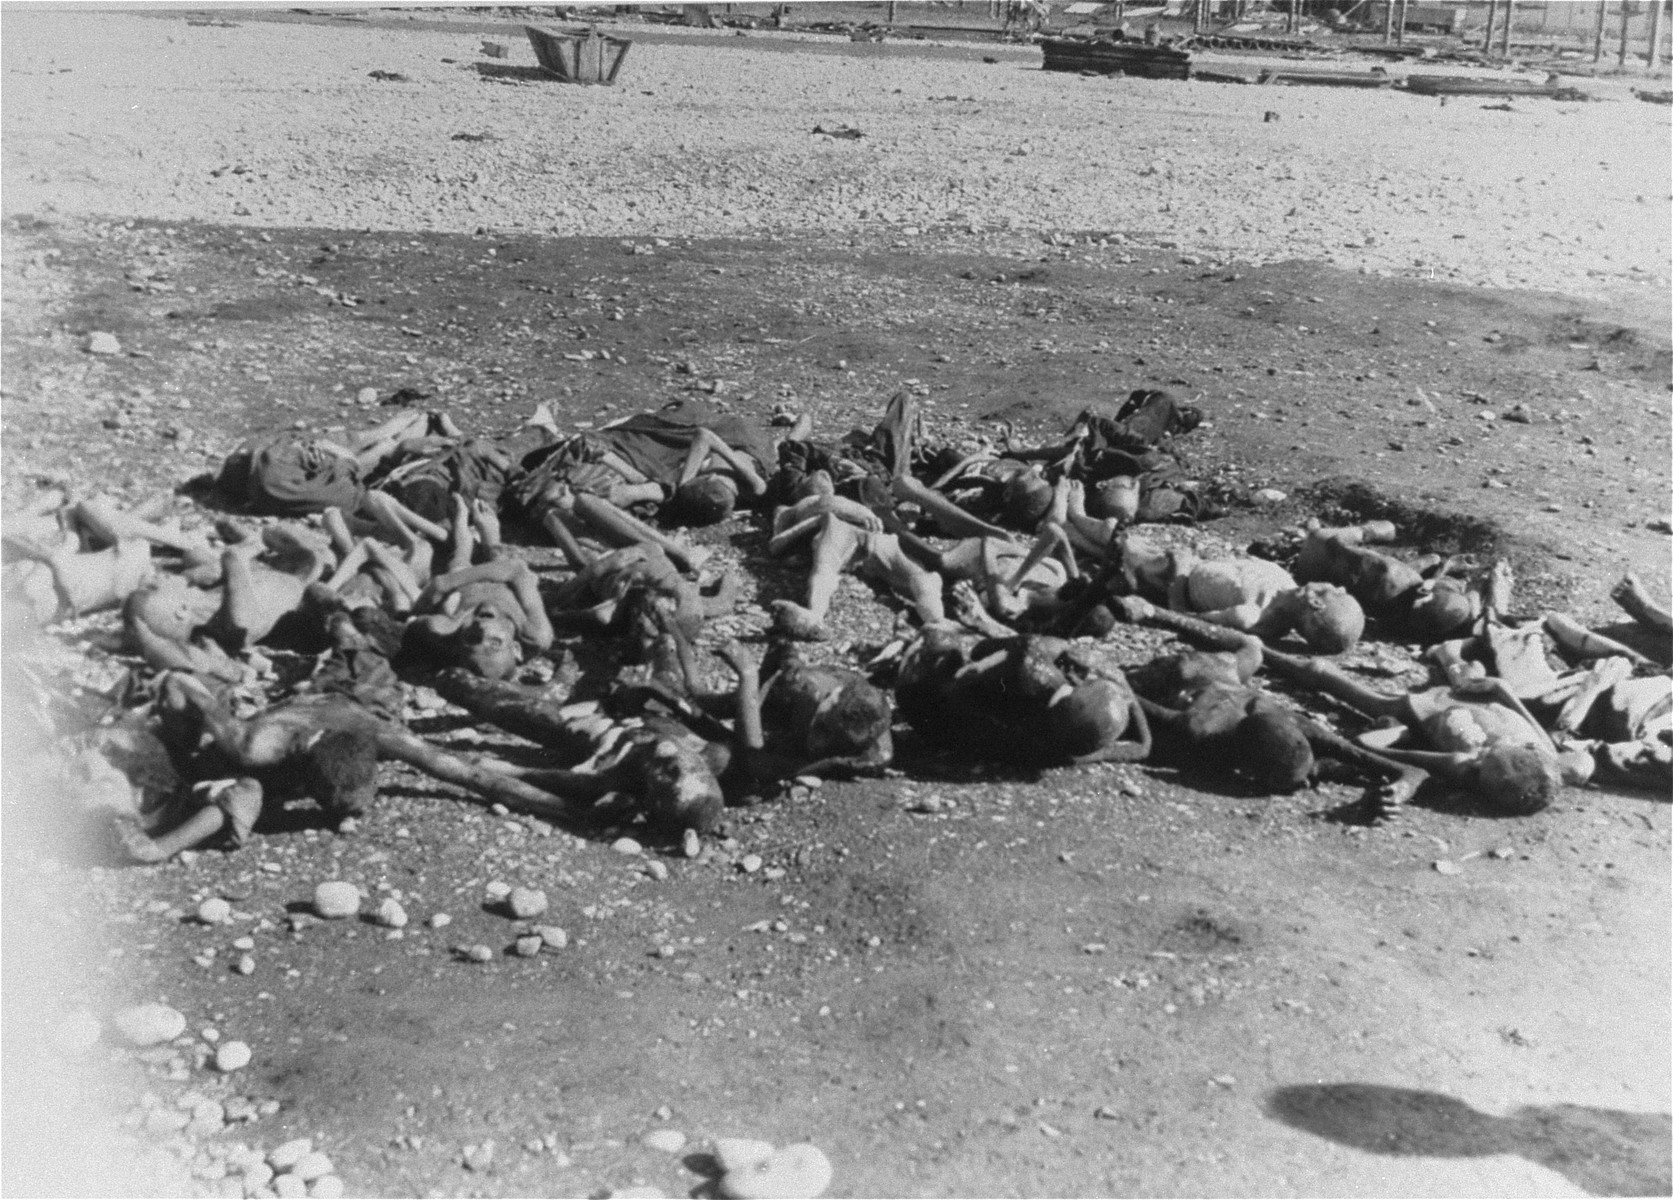 Corpses in the Kaufering IV concentration camp.